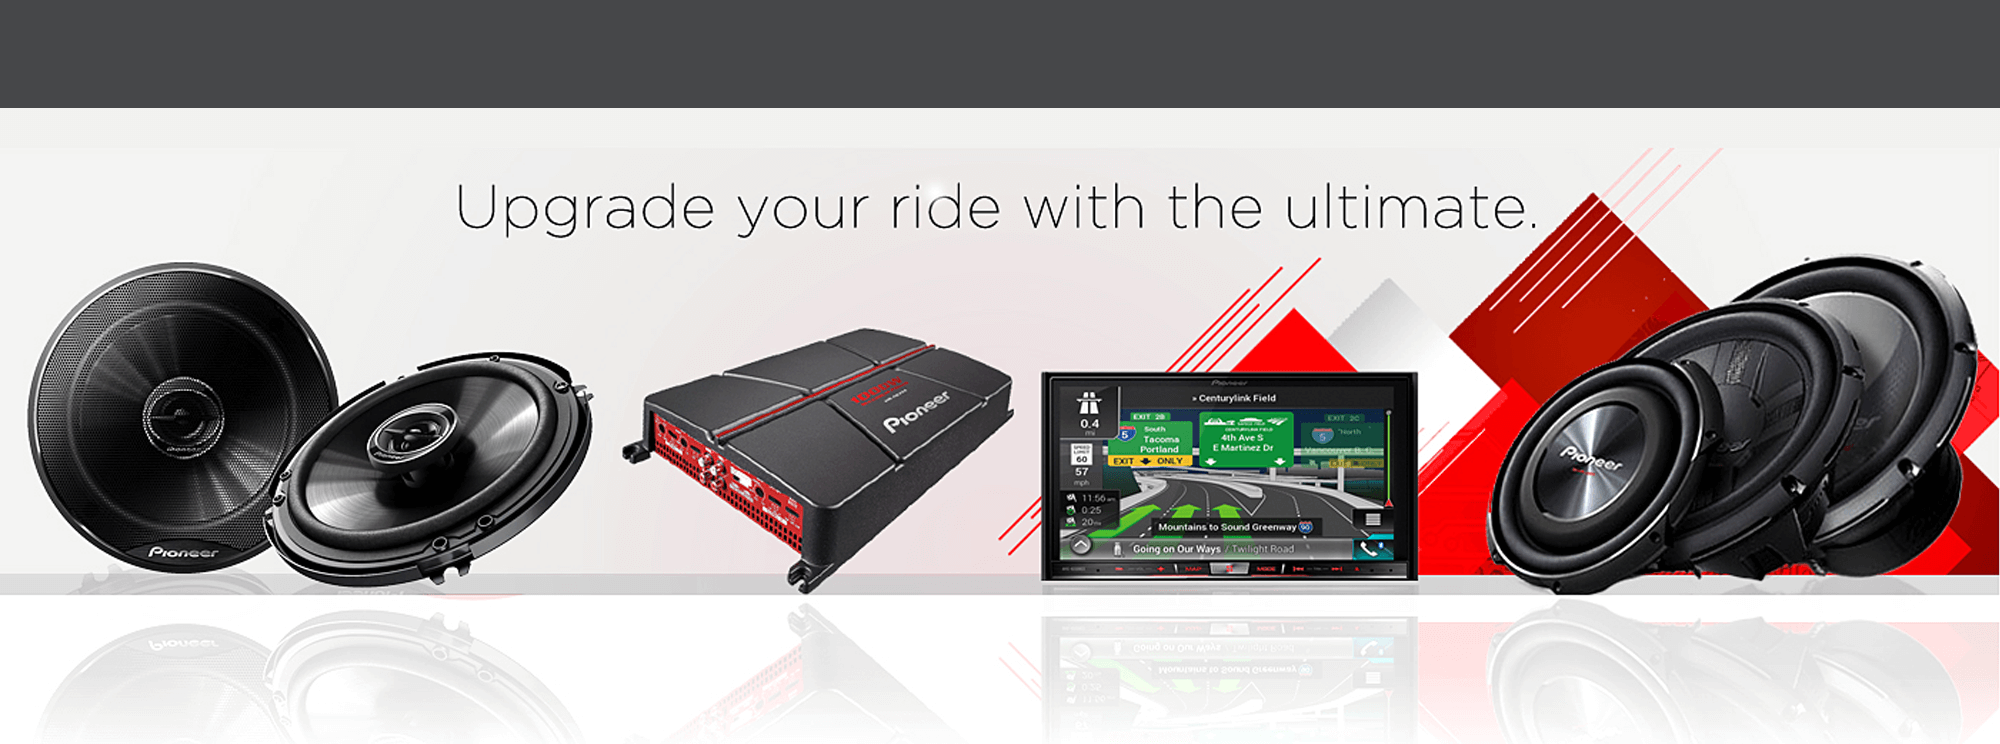 Upgrade your ride with the ultimate